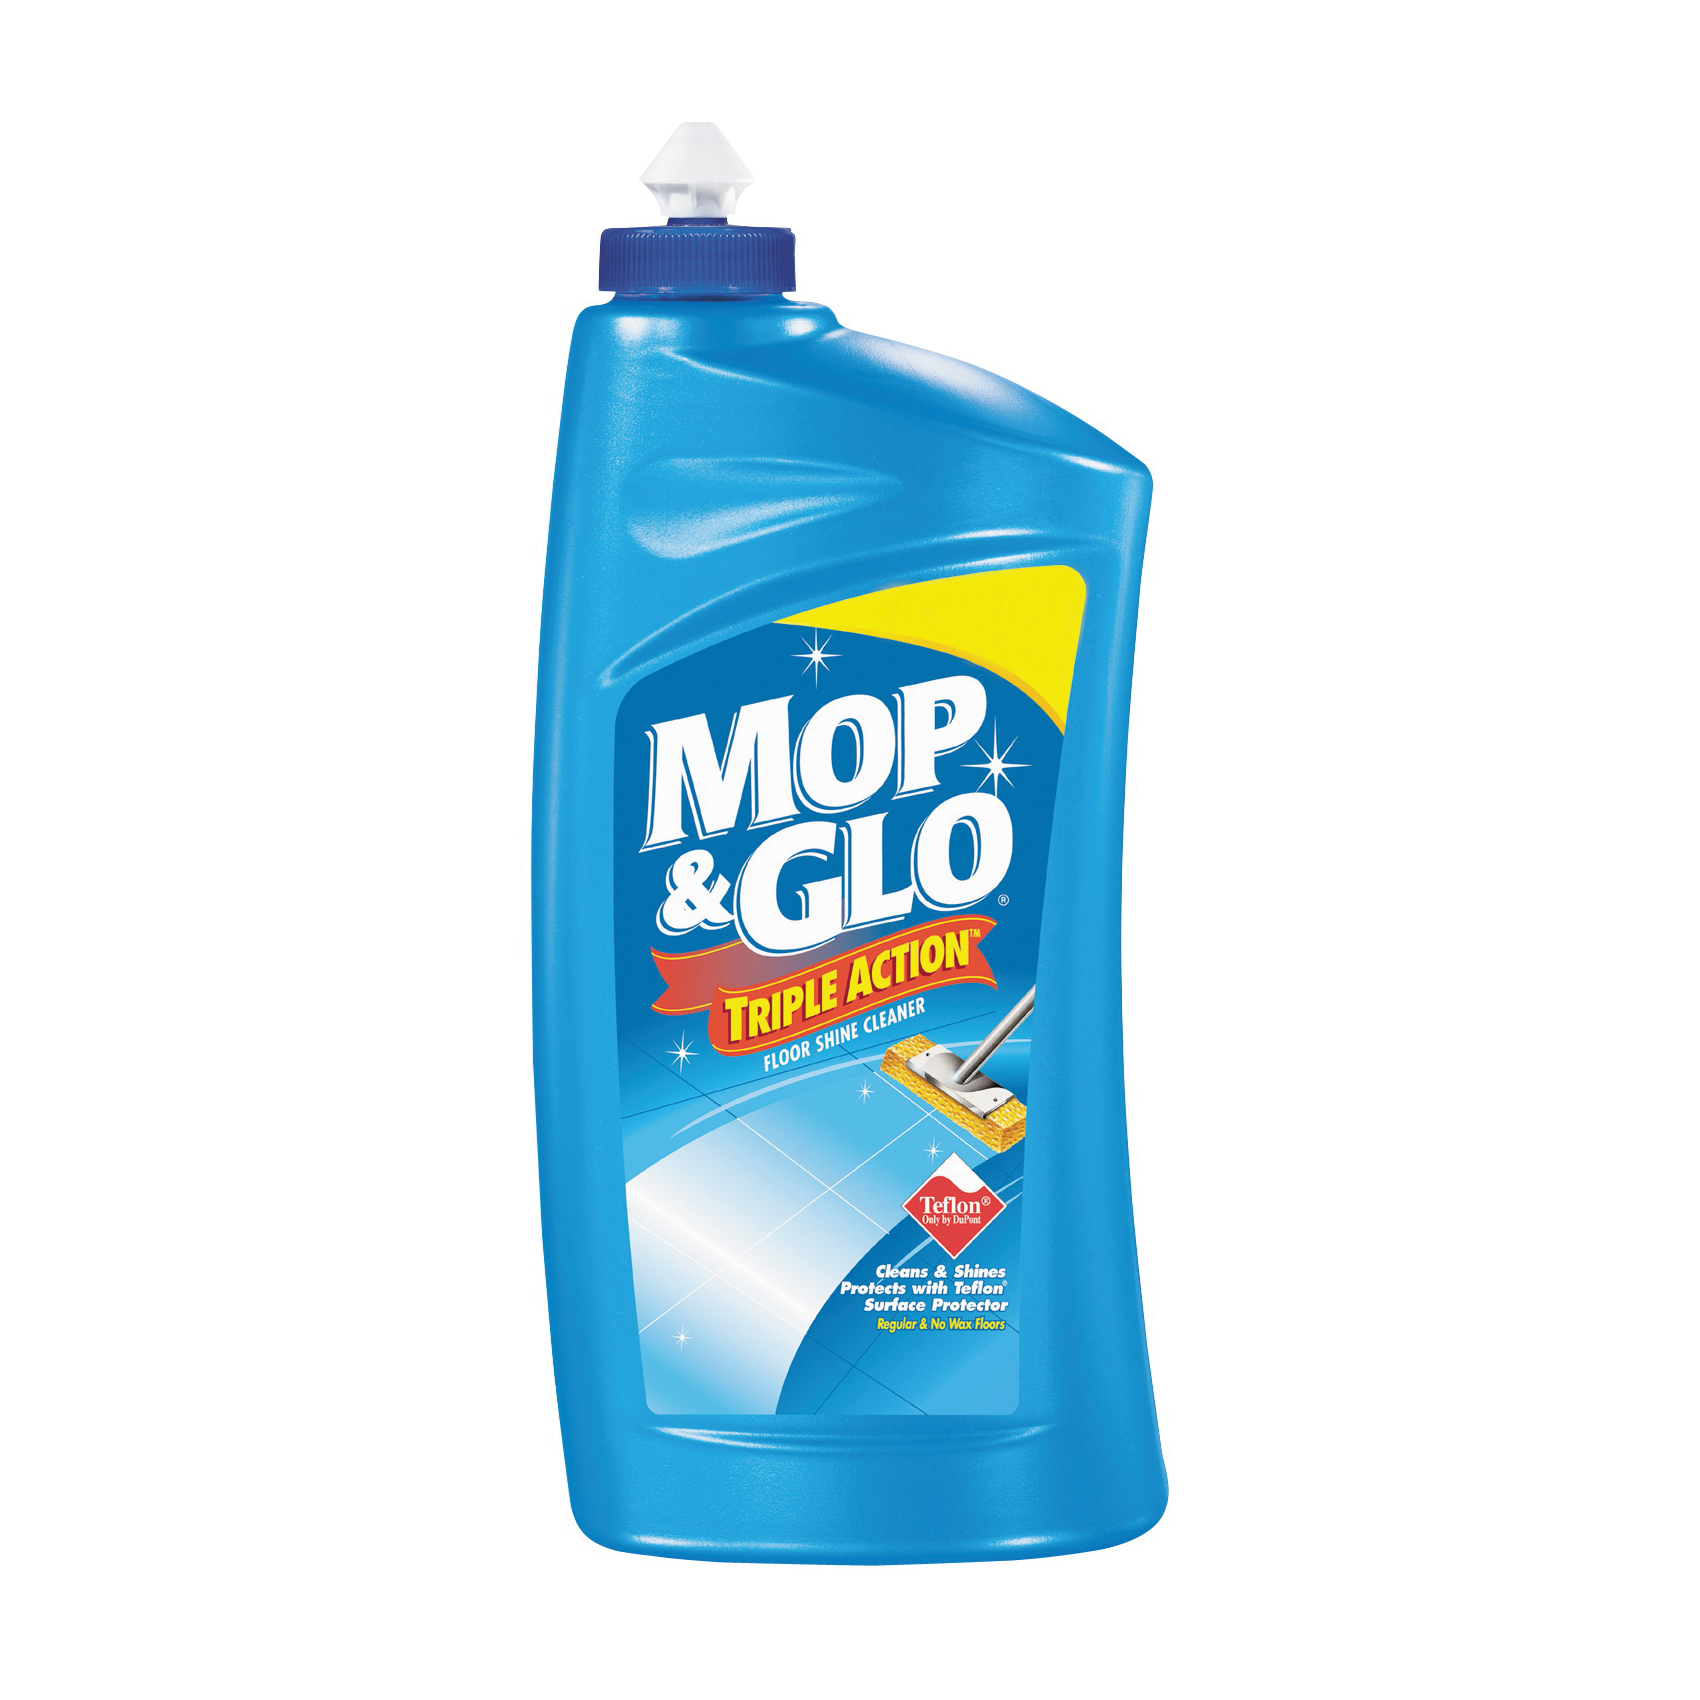 Picture of Mop & Glo 1920089333 Floor Shine Cleaner, 32 oz Package, Bottle, Liquid, Citrus, Tan